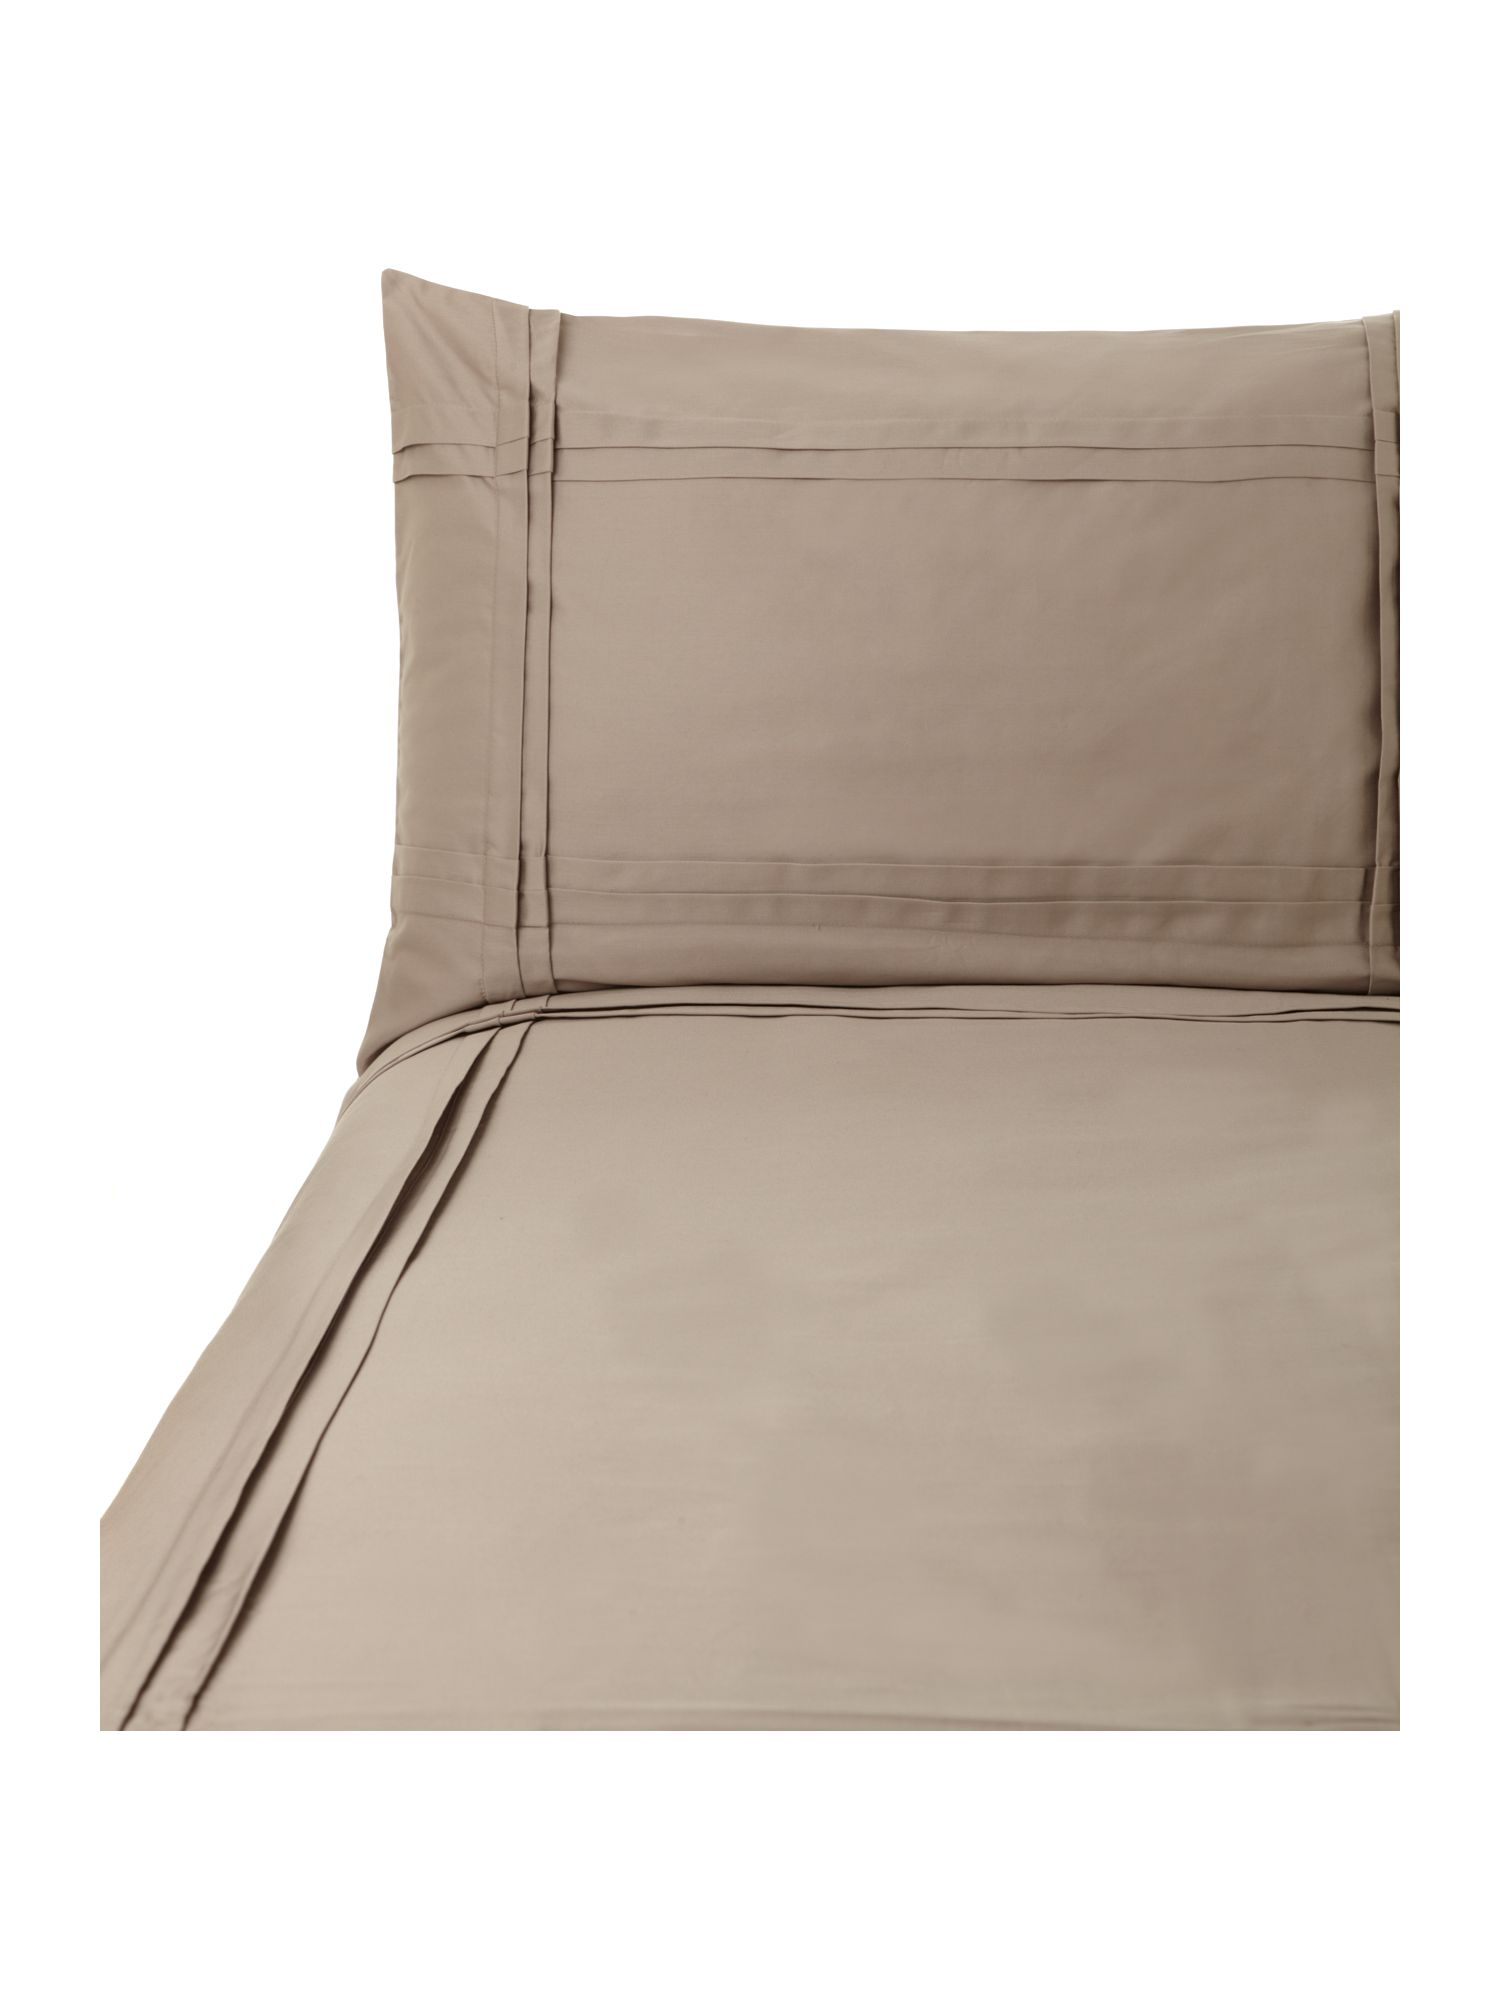 Criss Cross Pleat single duvet cover set oyster